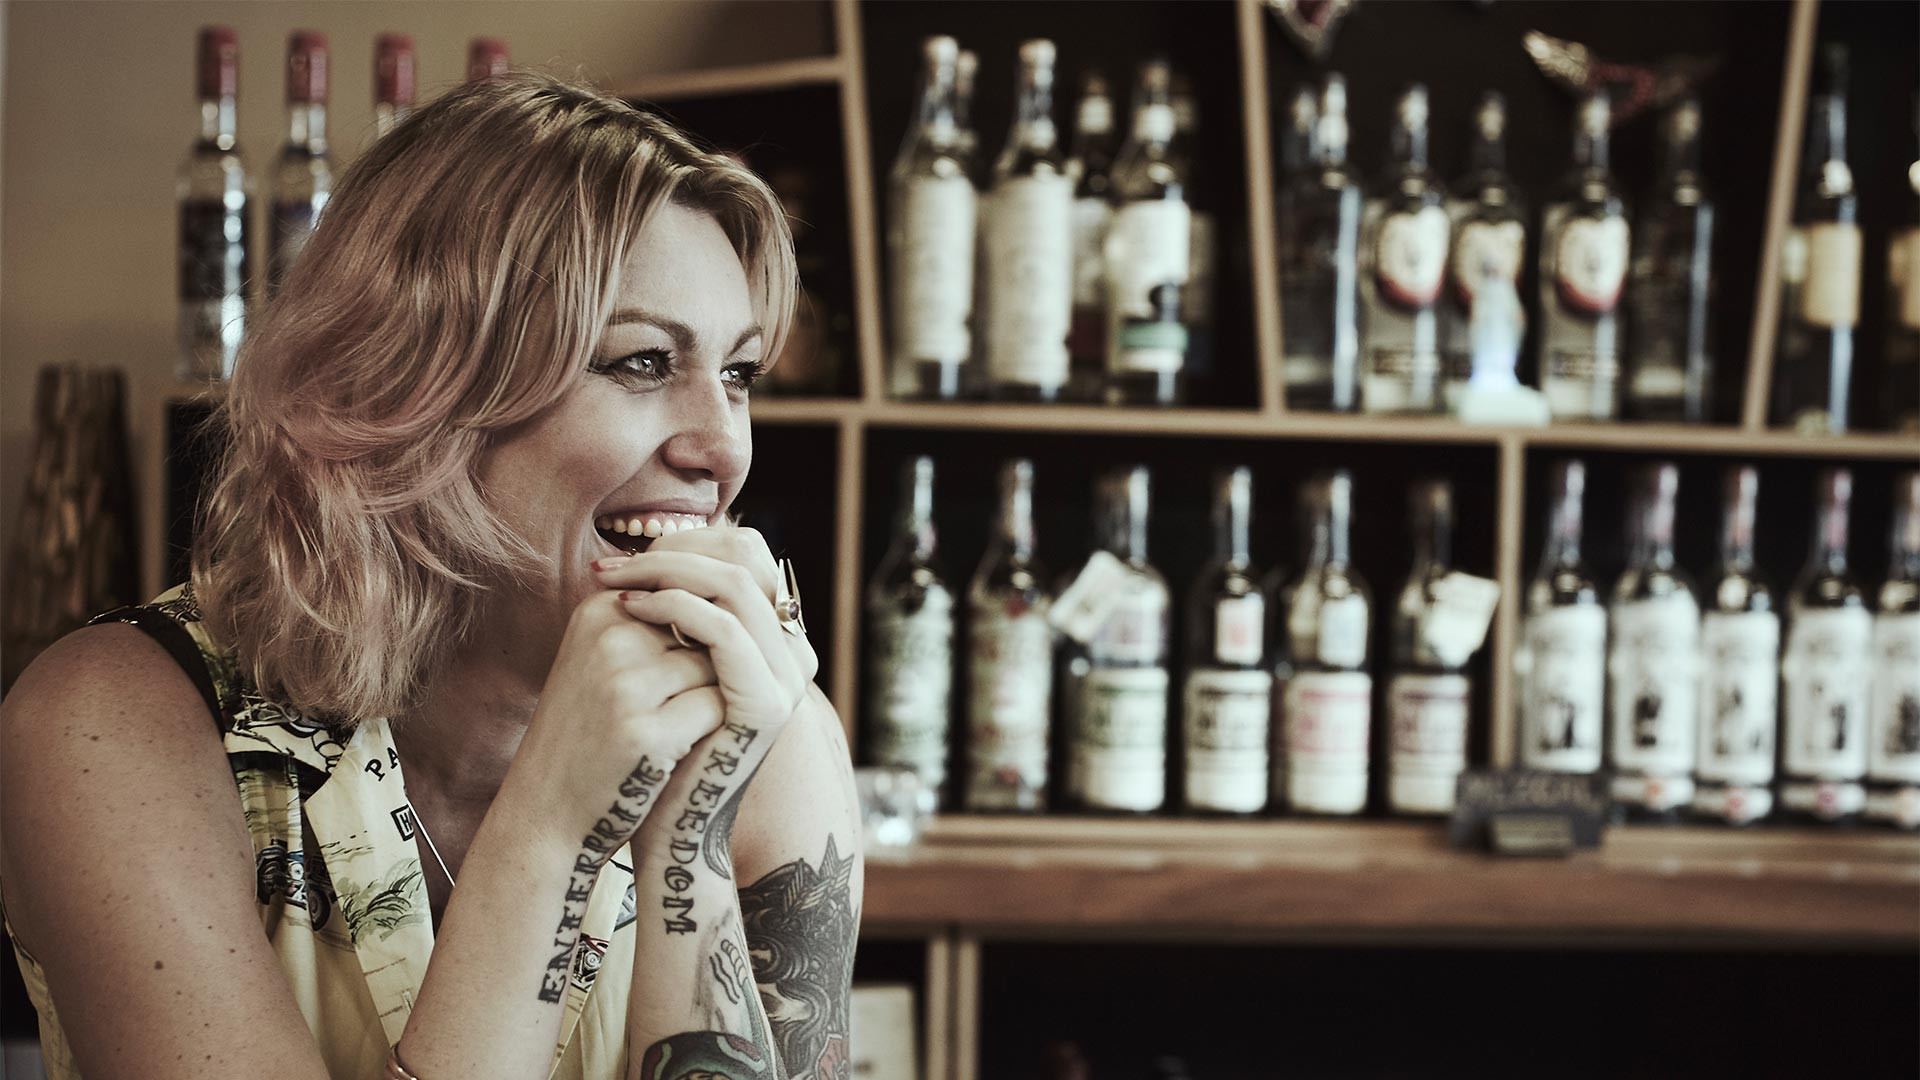 Melanie Symonds of Quiquiriqui mezcal